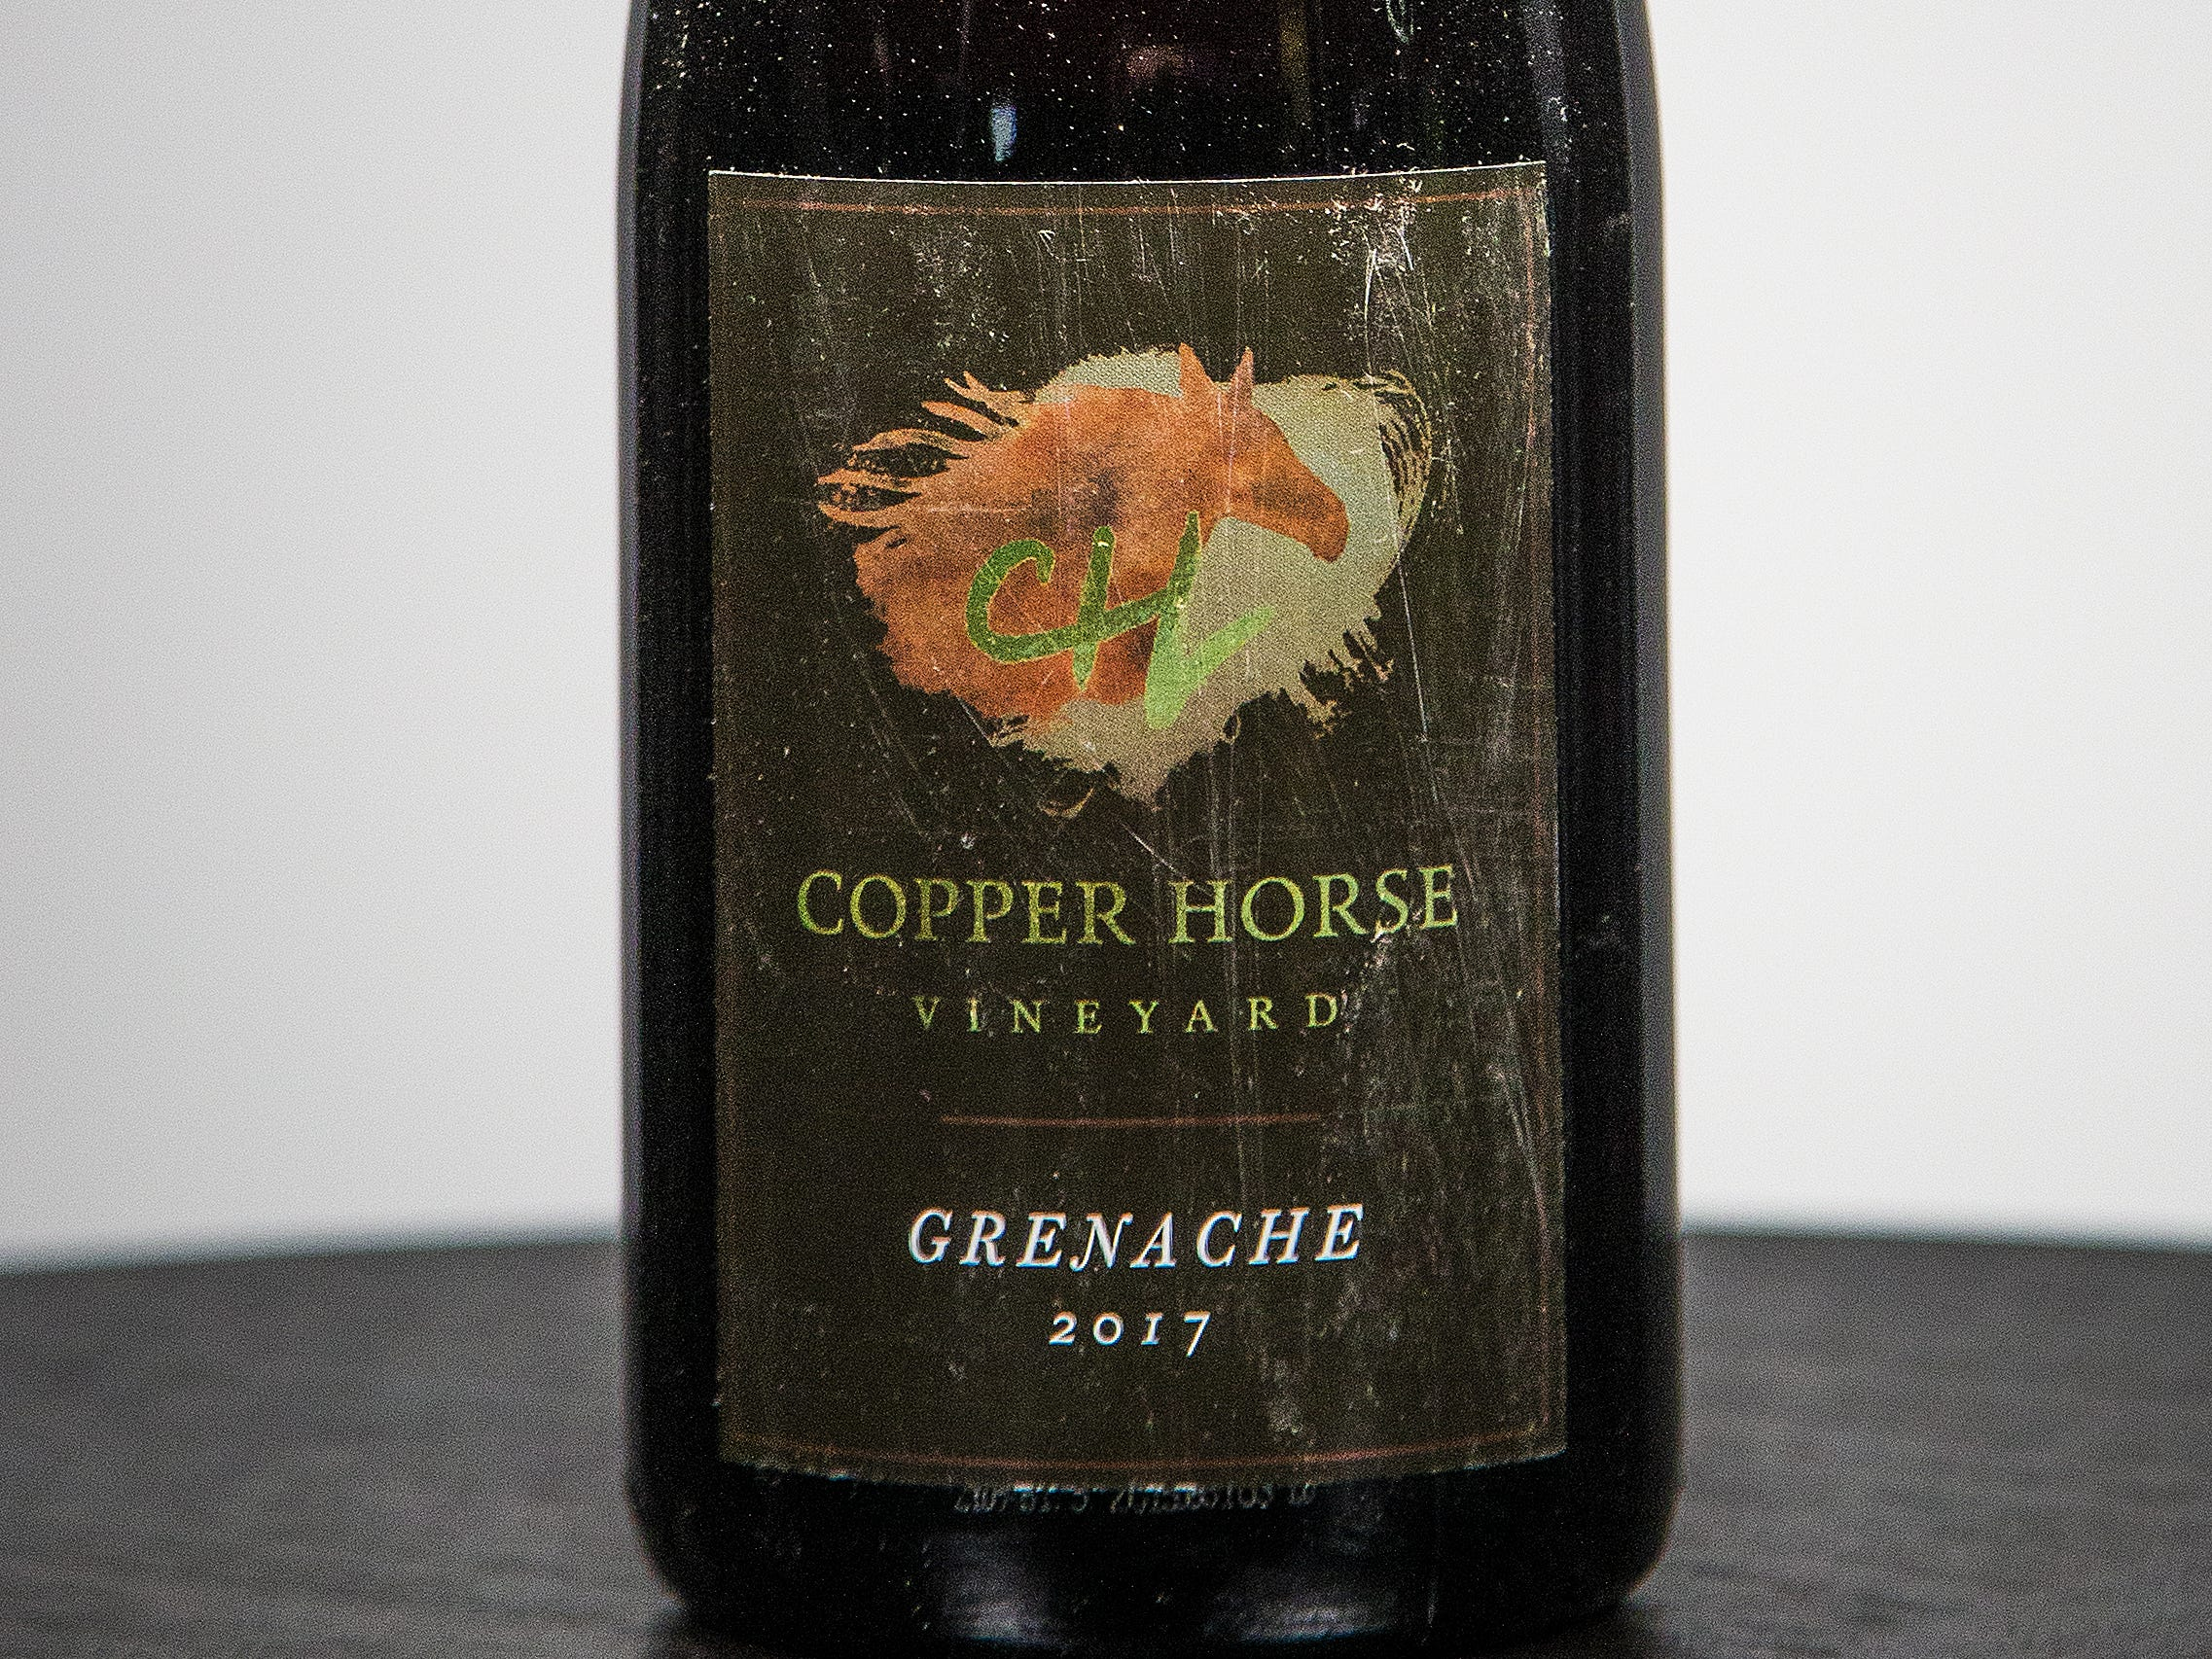 Best Grenache: Copper Horse Vineyard Grenache 2017.